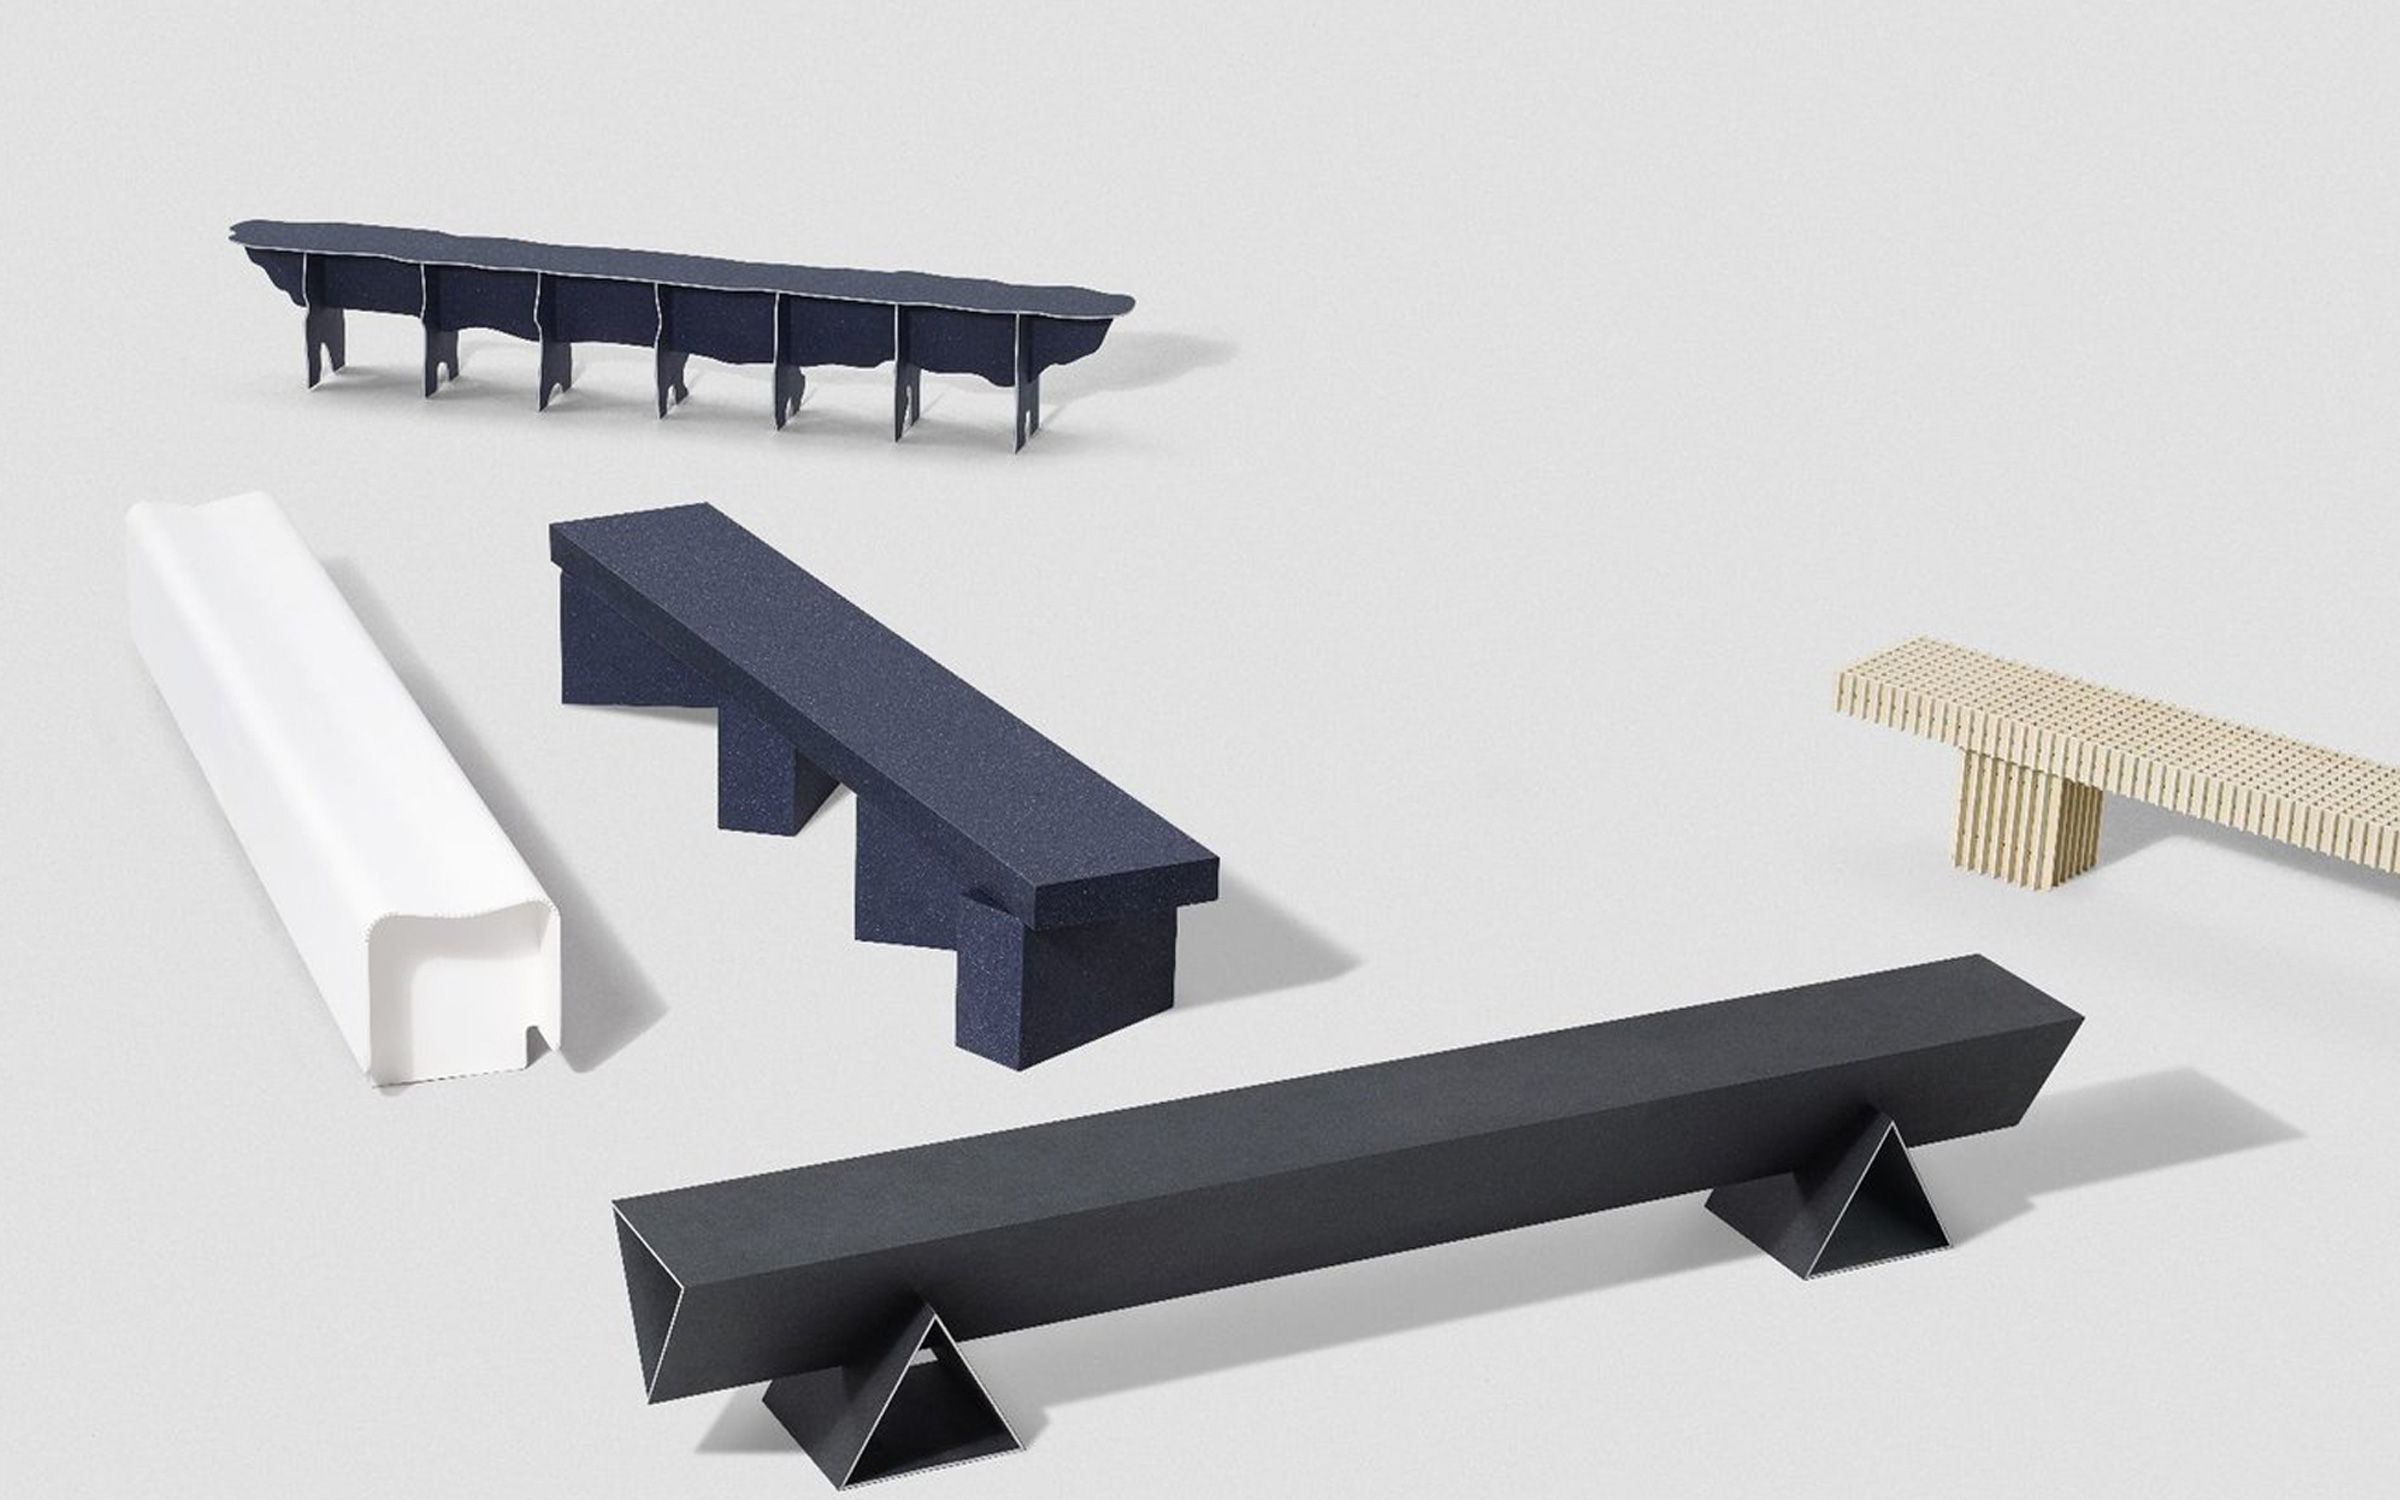 Solid Textile Board Benches by Max Lomb